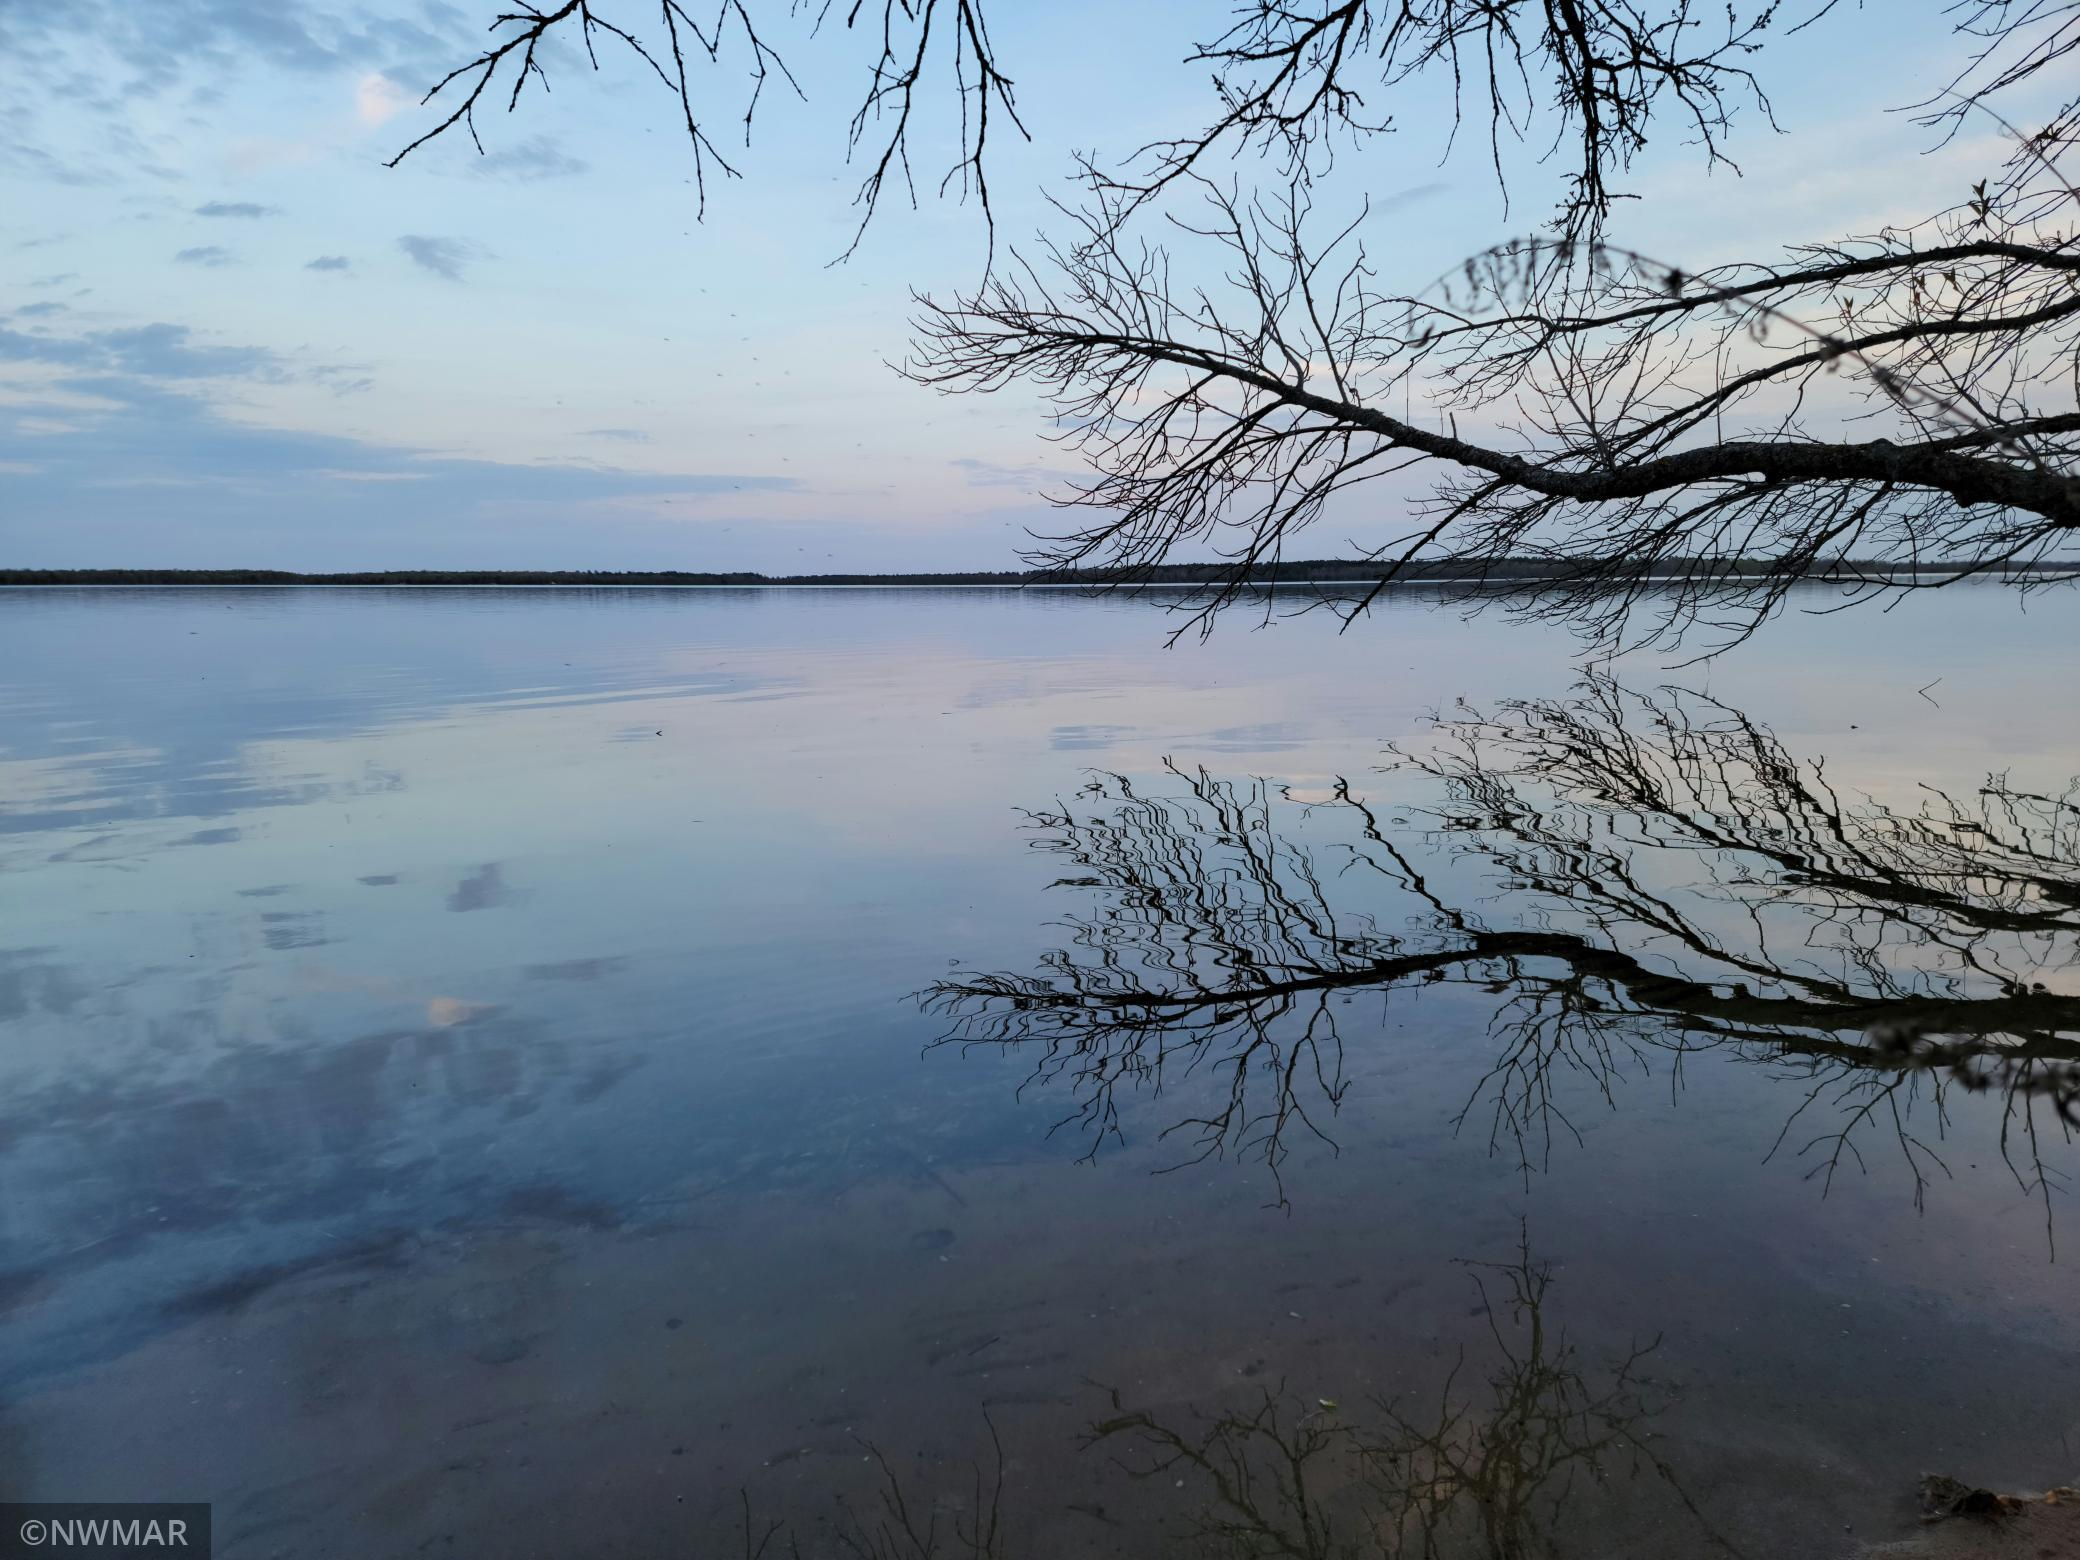 Here is your chance to enjoy Cass Lake and all it has to offer! These 2 parcels have been married forever and offer 5 acres with 345' +/- of level, sandy, south facing lakeshore.  The view is spectacular. The lake bottom gently drops off providing swimming area and yet deep enough for a boat to pull in.  Well and electric are already on site but not currently in use. Owning property on Cass Lake provides more than ample recreation as it is one in a chain of 9 lakes that includes the Mississippi River.  If you need more leg room a wooded 9 ac parcel across the road is available from the same party;  MLS #5722991.  Cass Lake is a big lake that offers recreation and great fishing all year round.